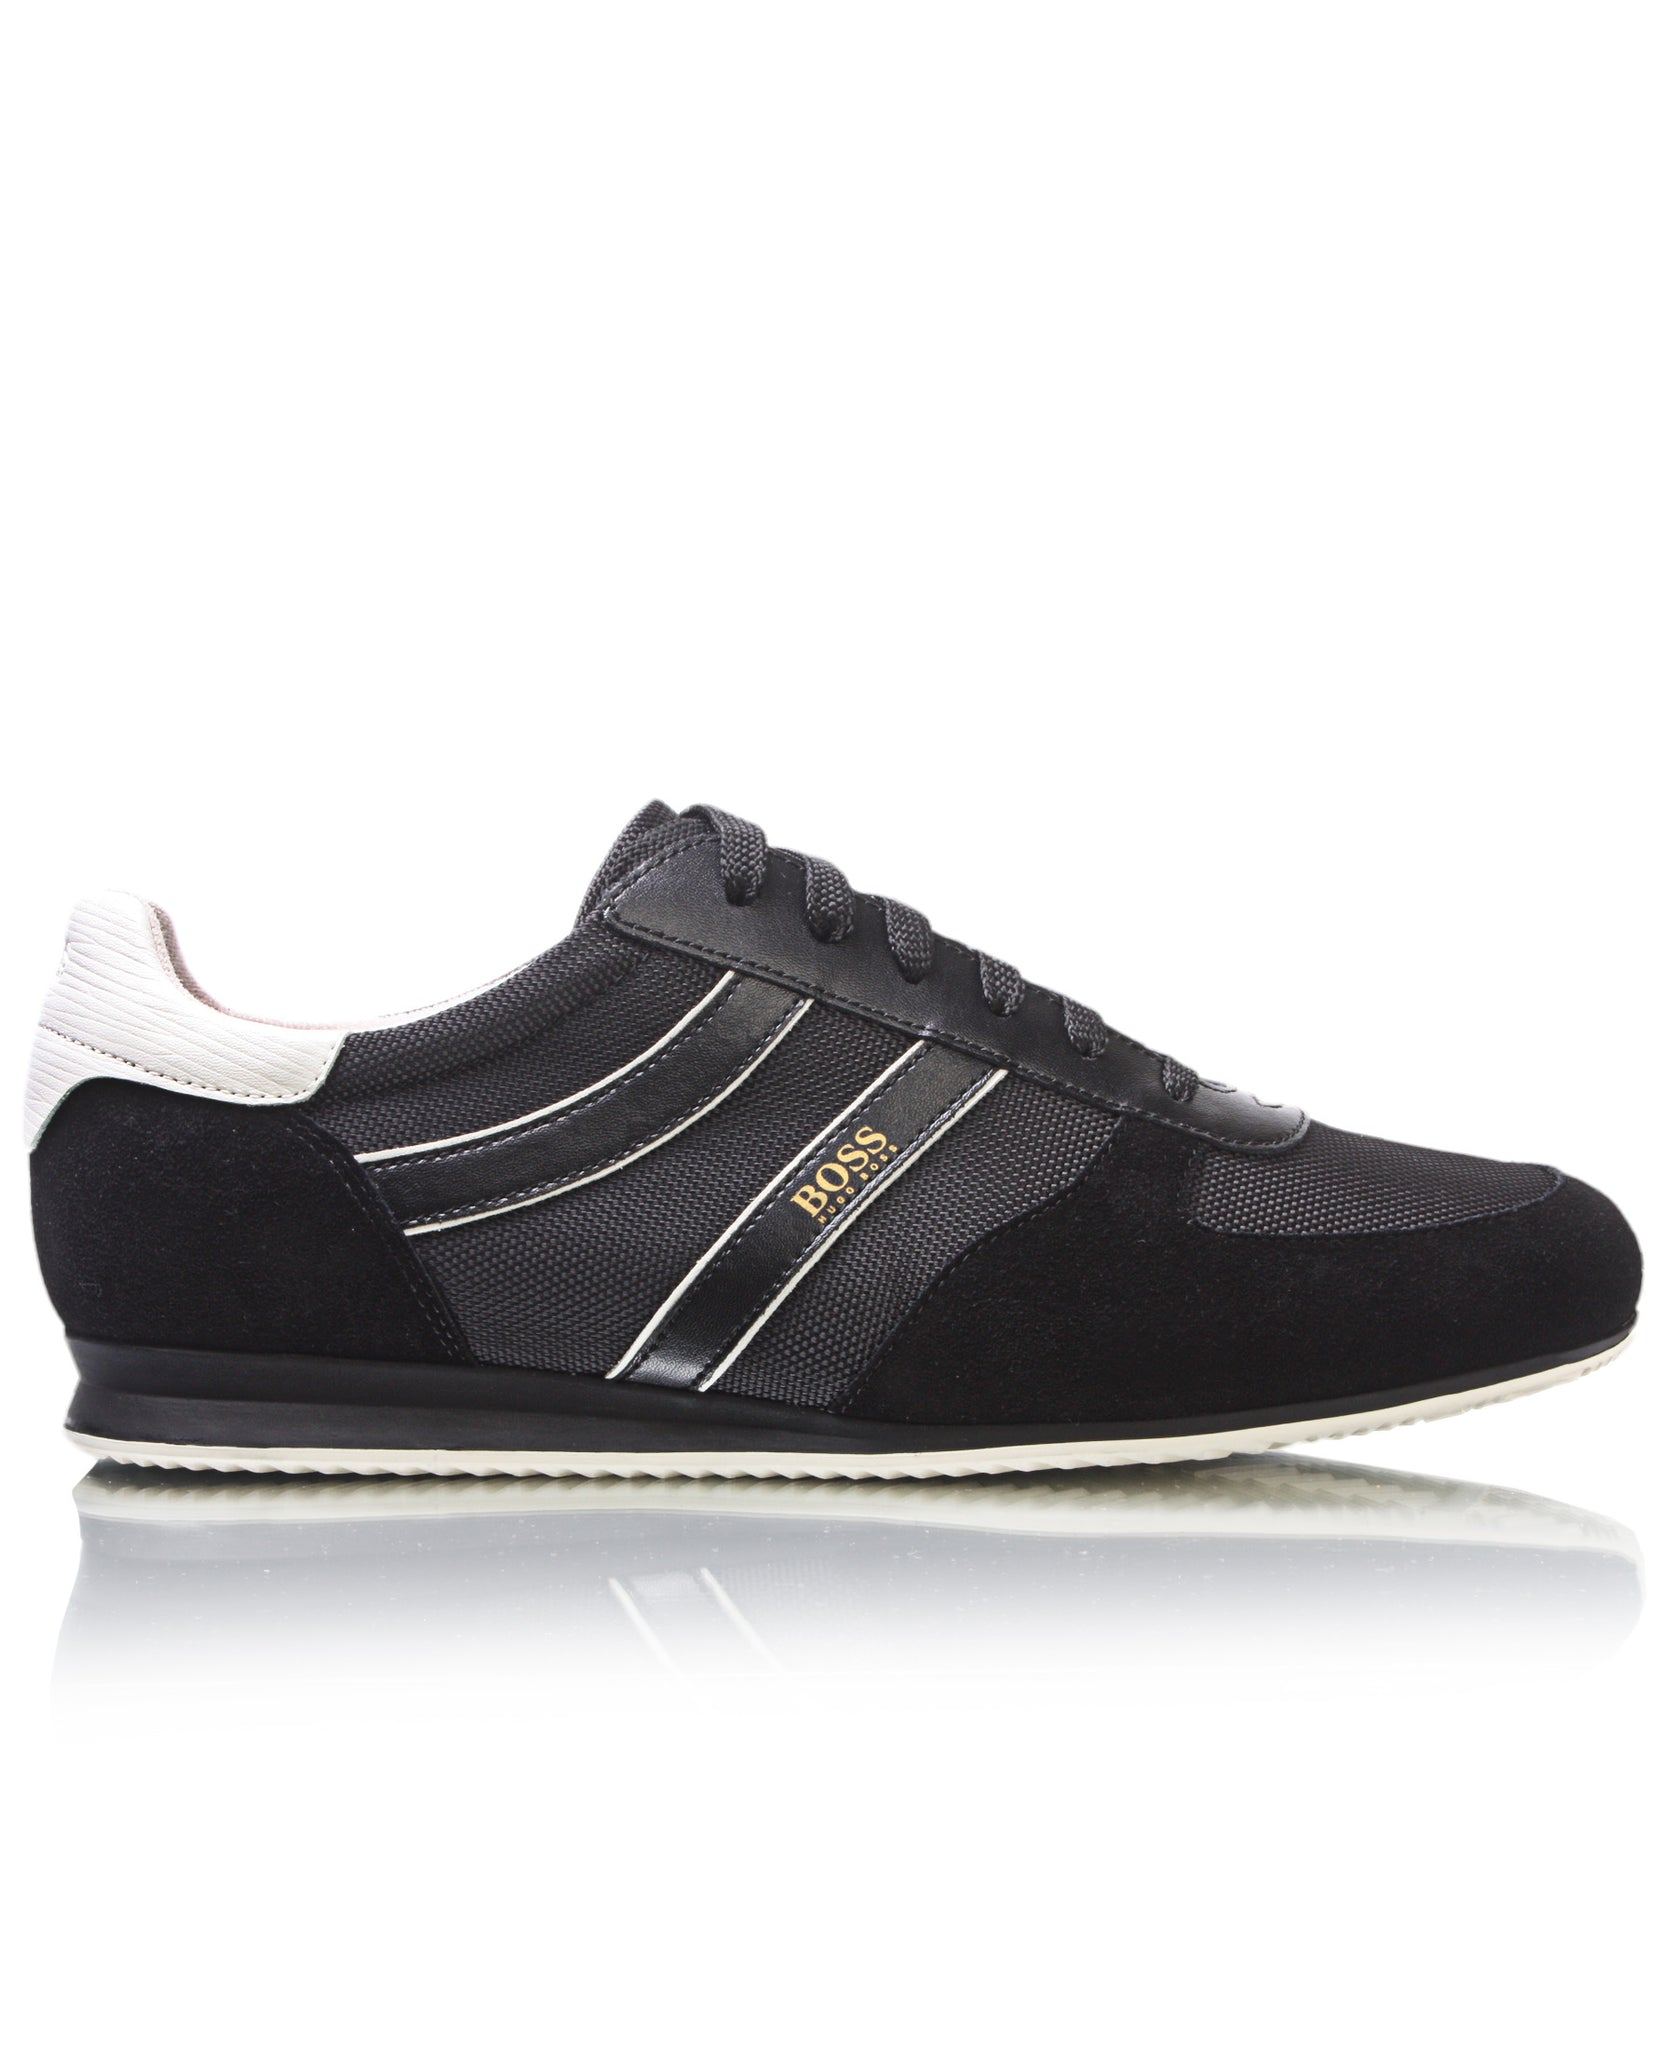 Hugo Boss Sneakers - Black